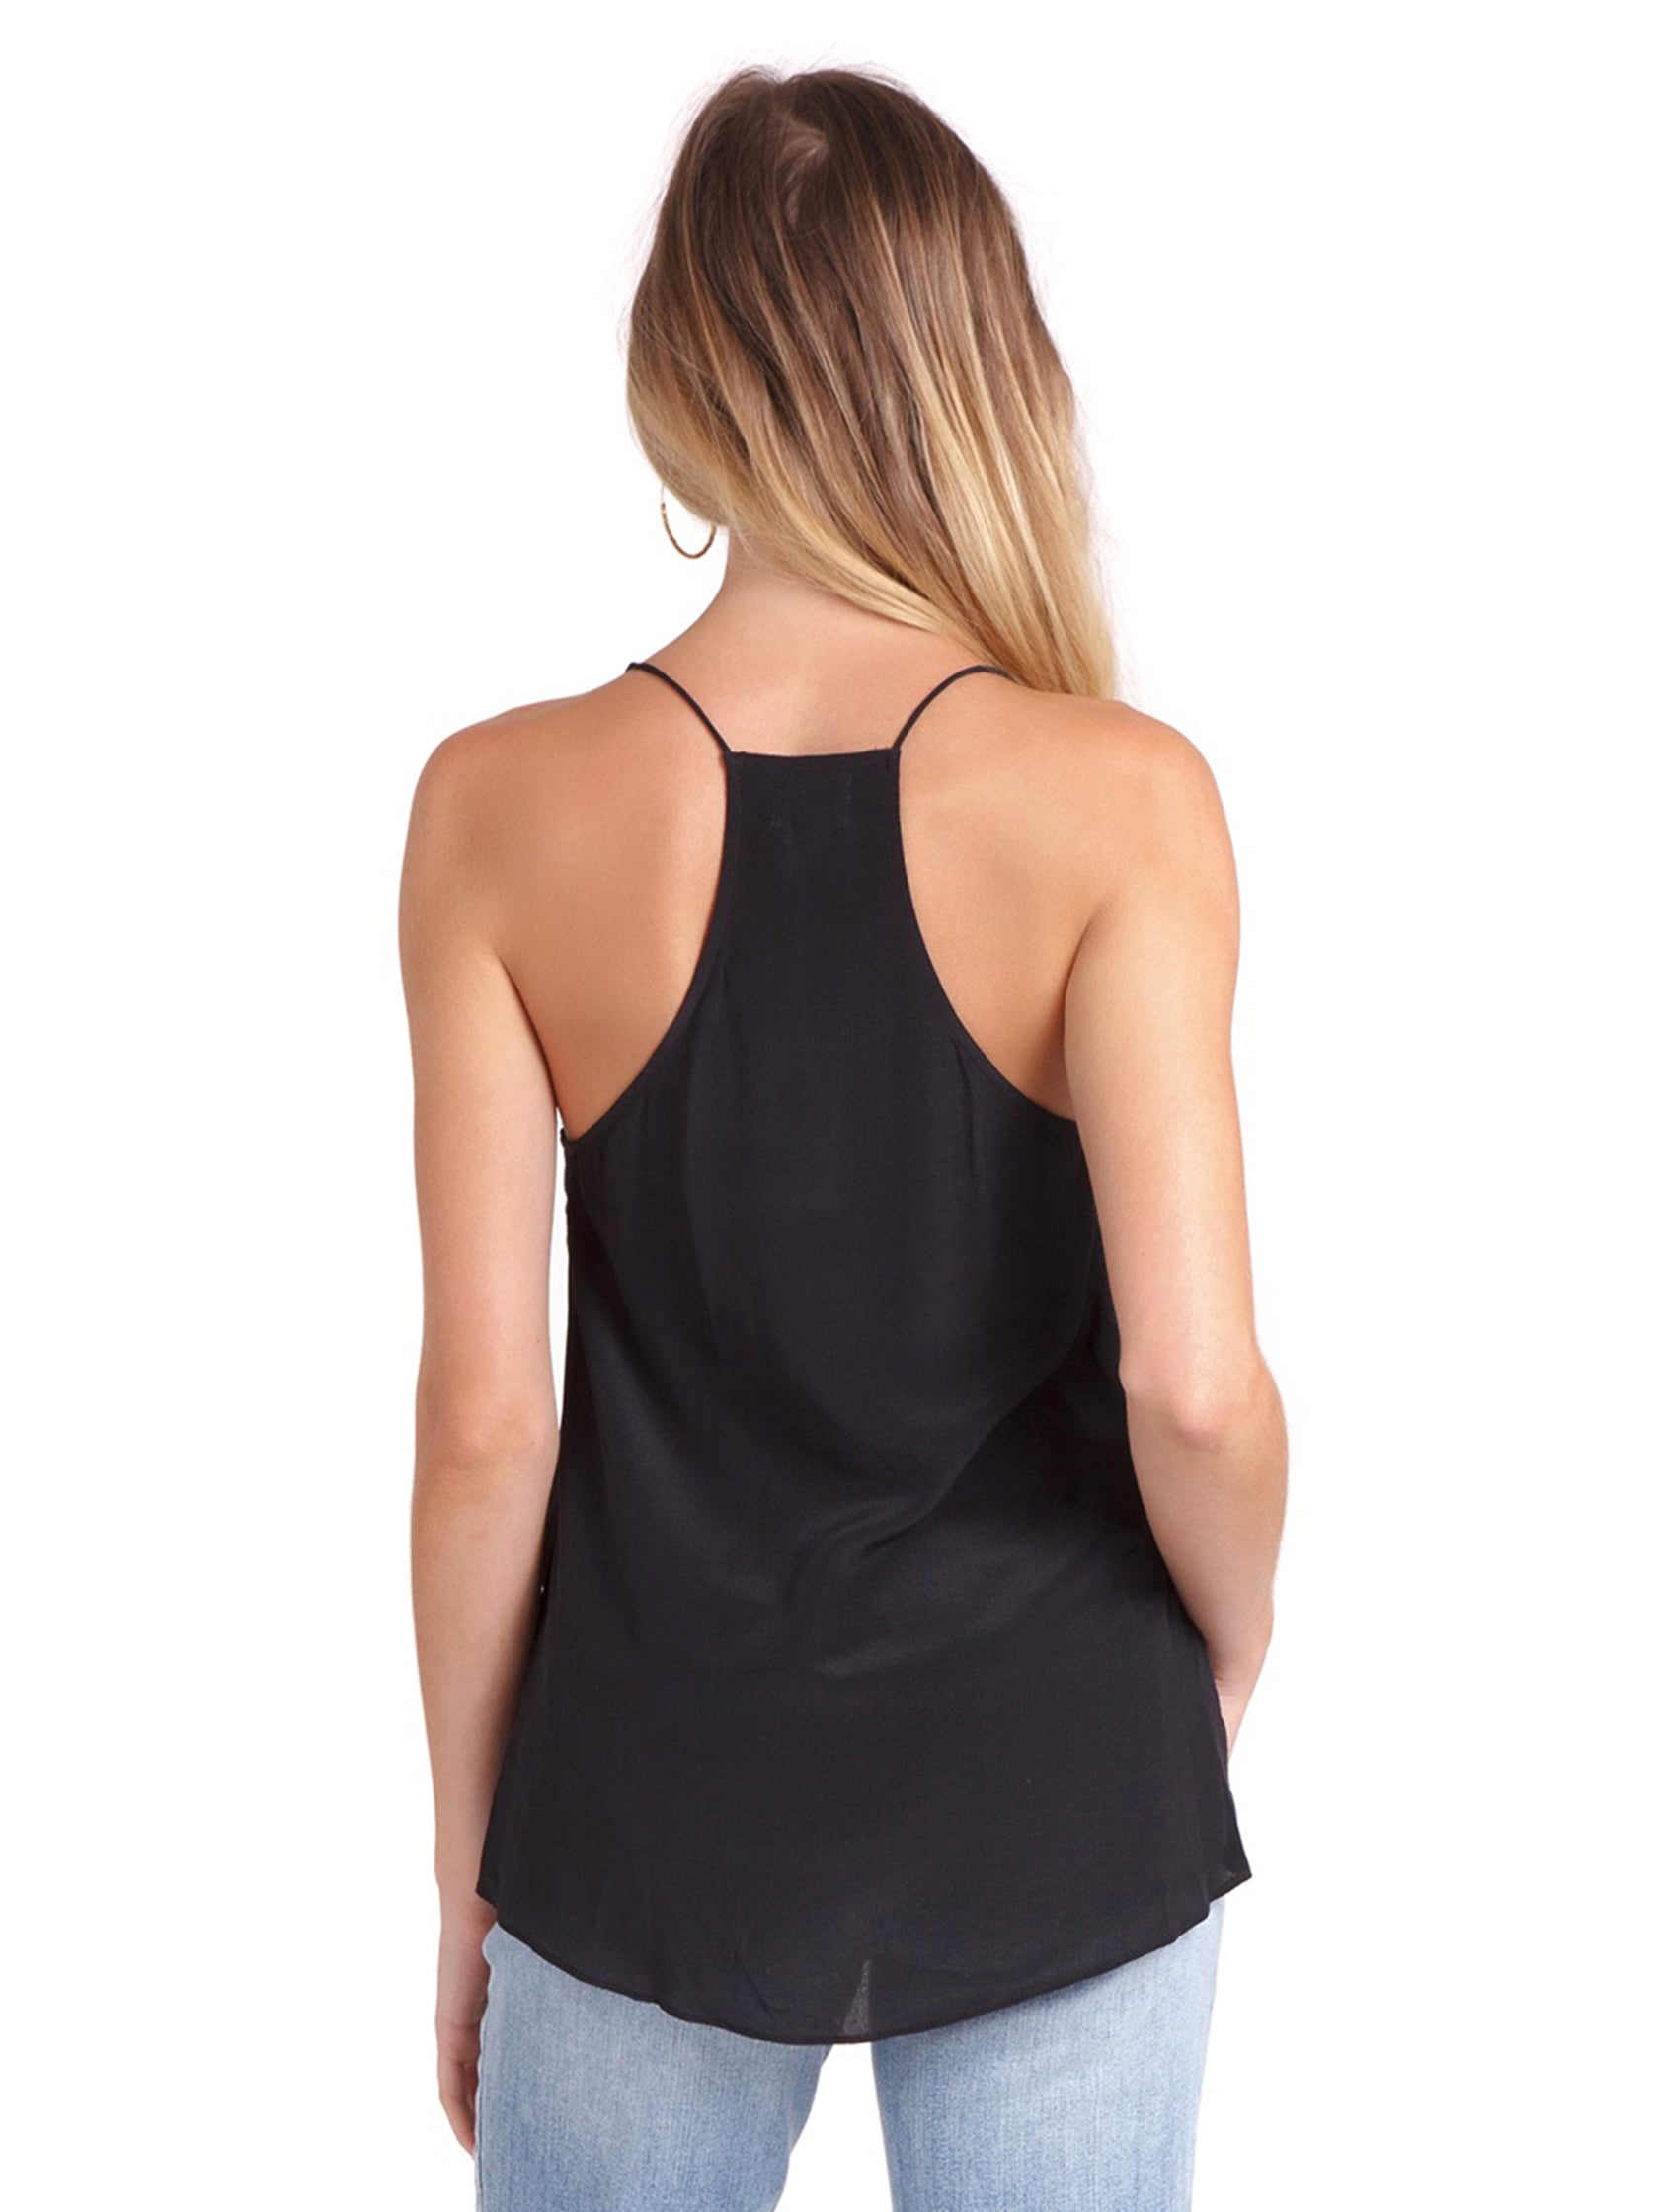 Women outfit in a cami rental from Cami NYC called The Racer Cami